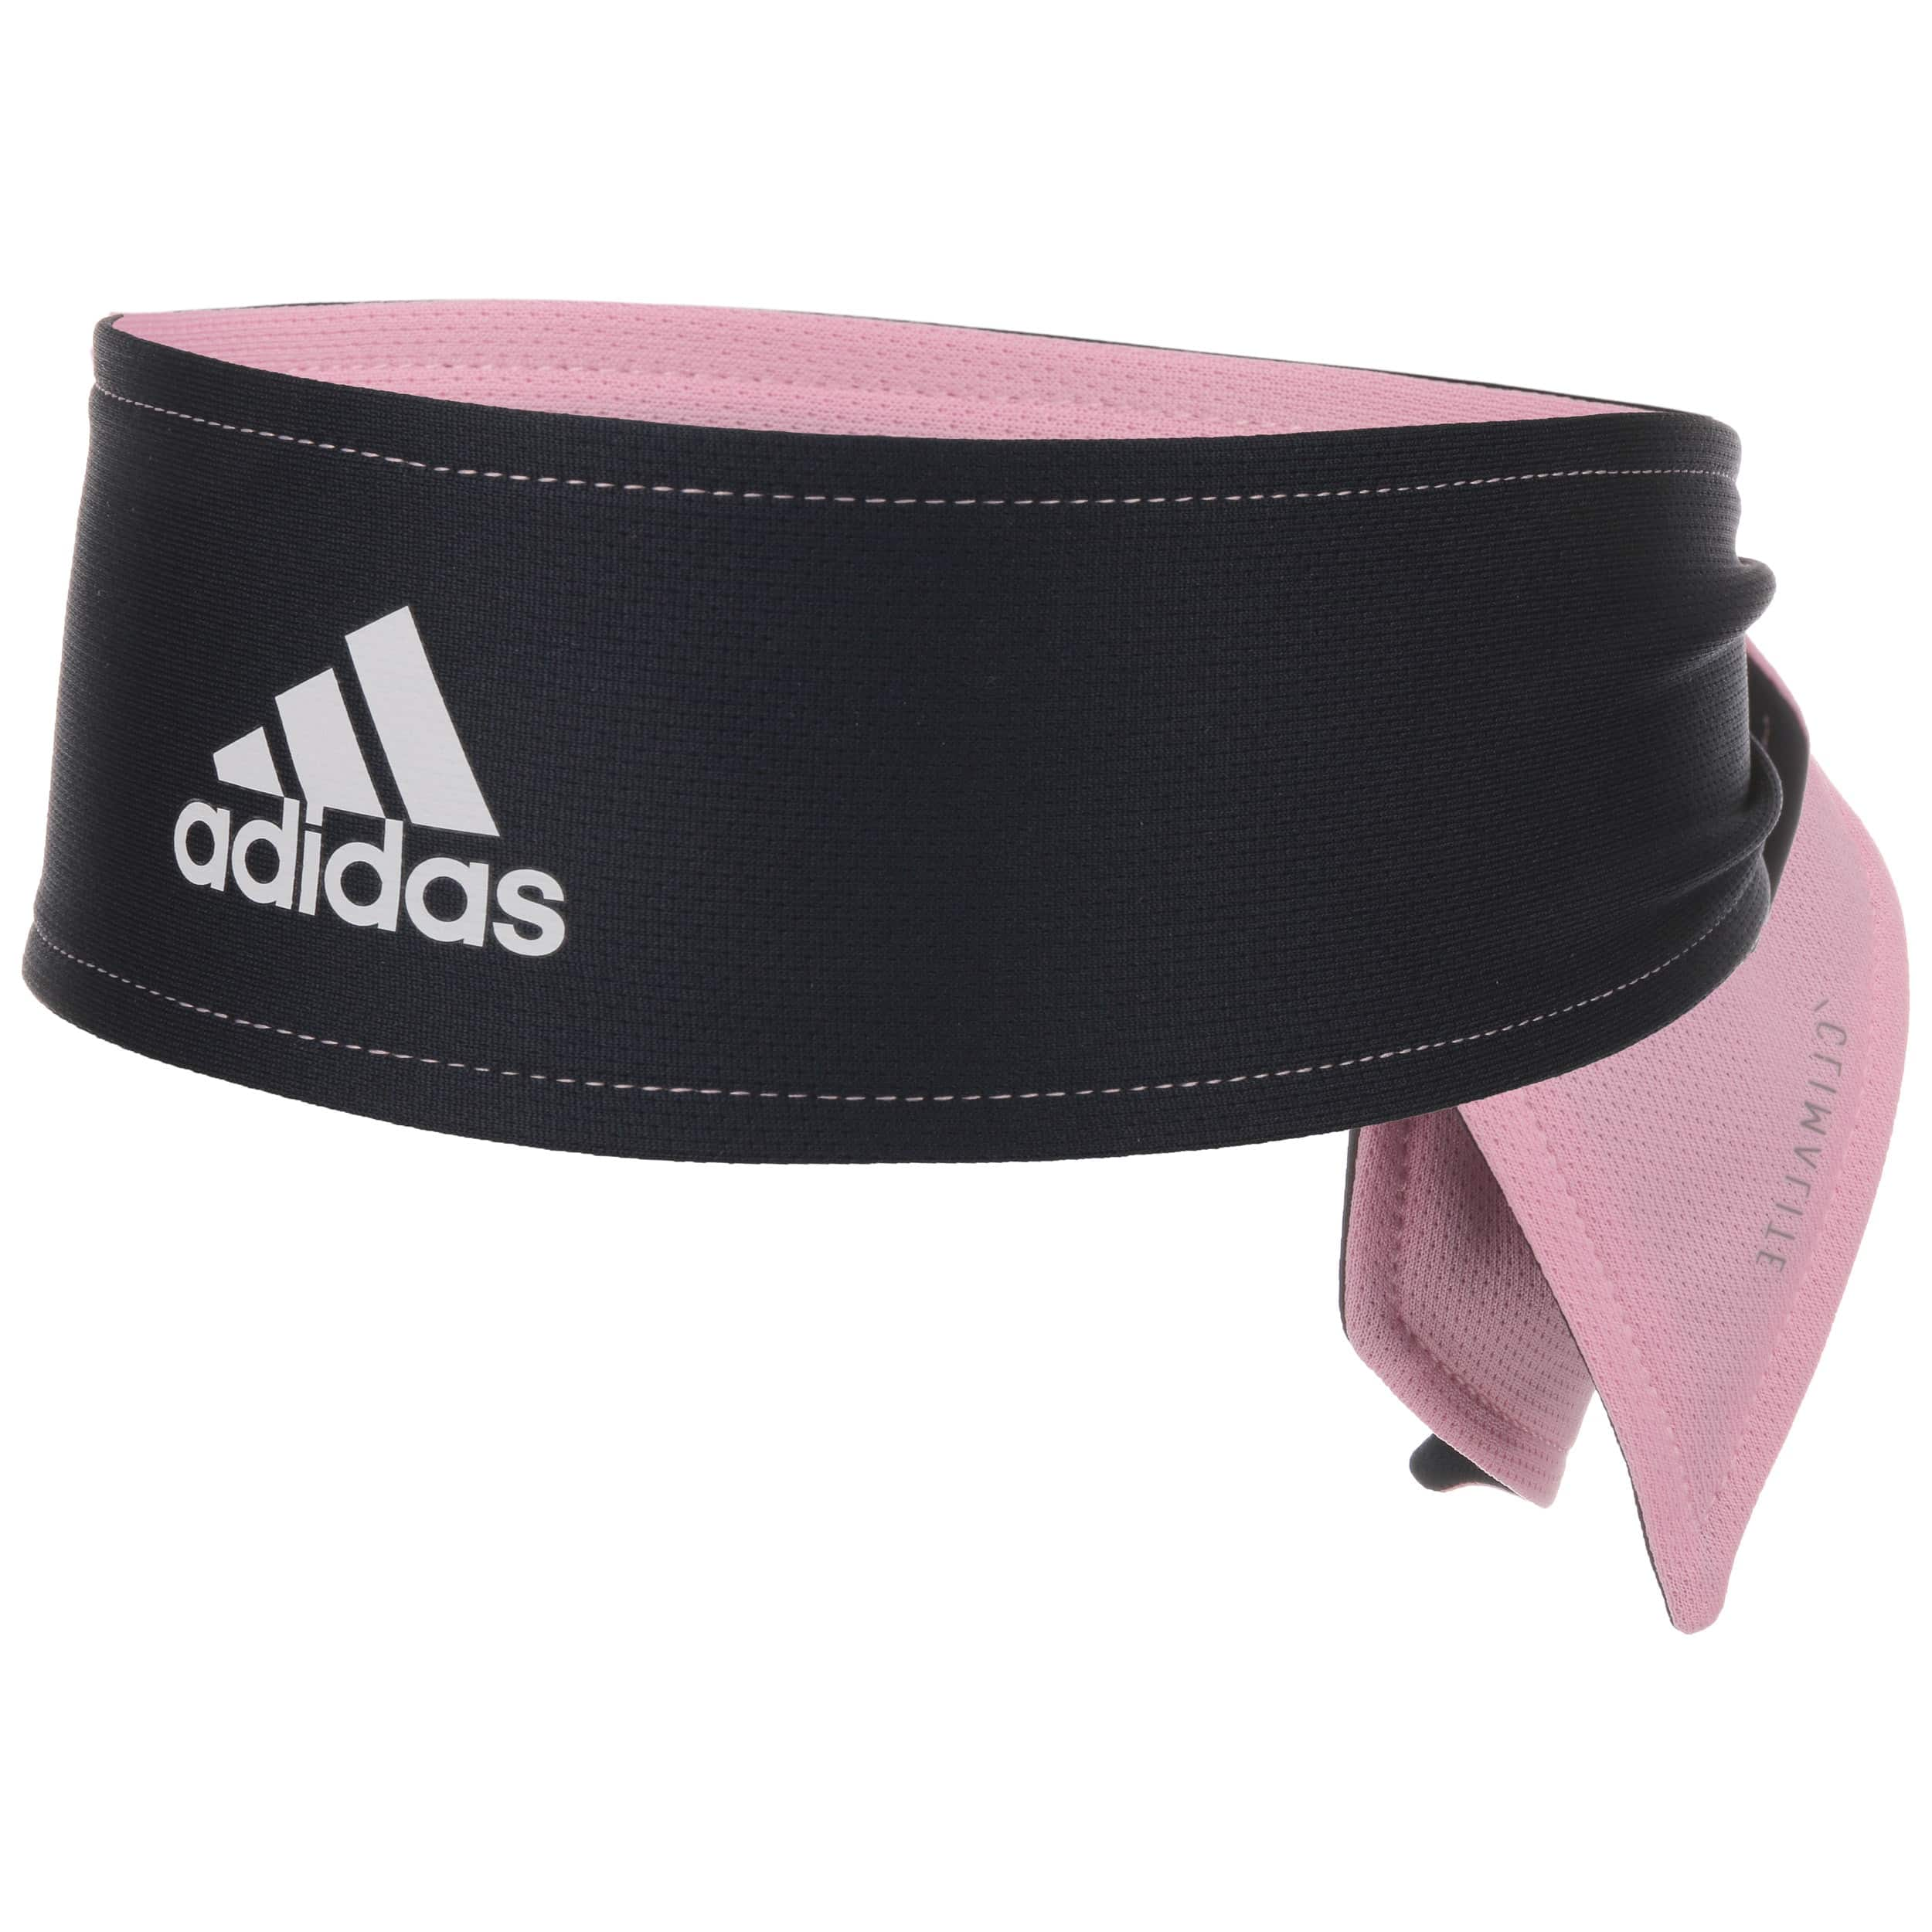 Bandeau Ten Rev by adidas